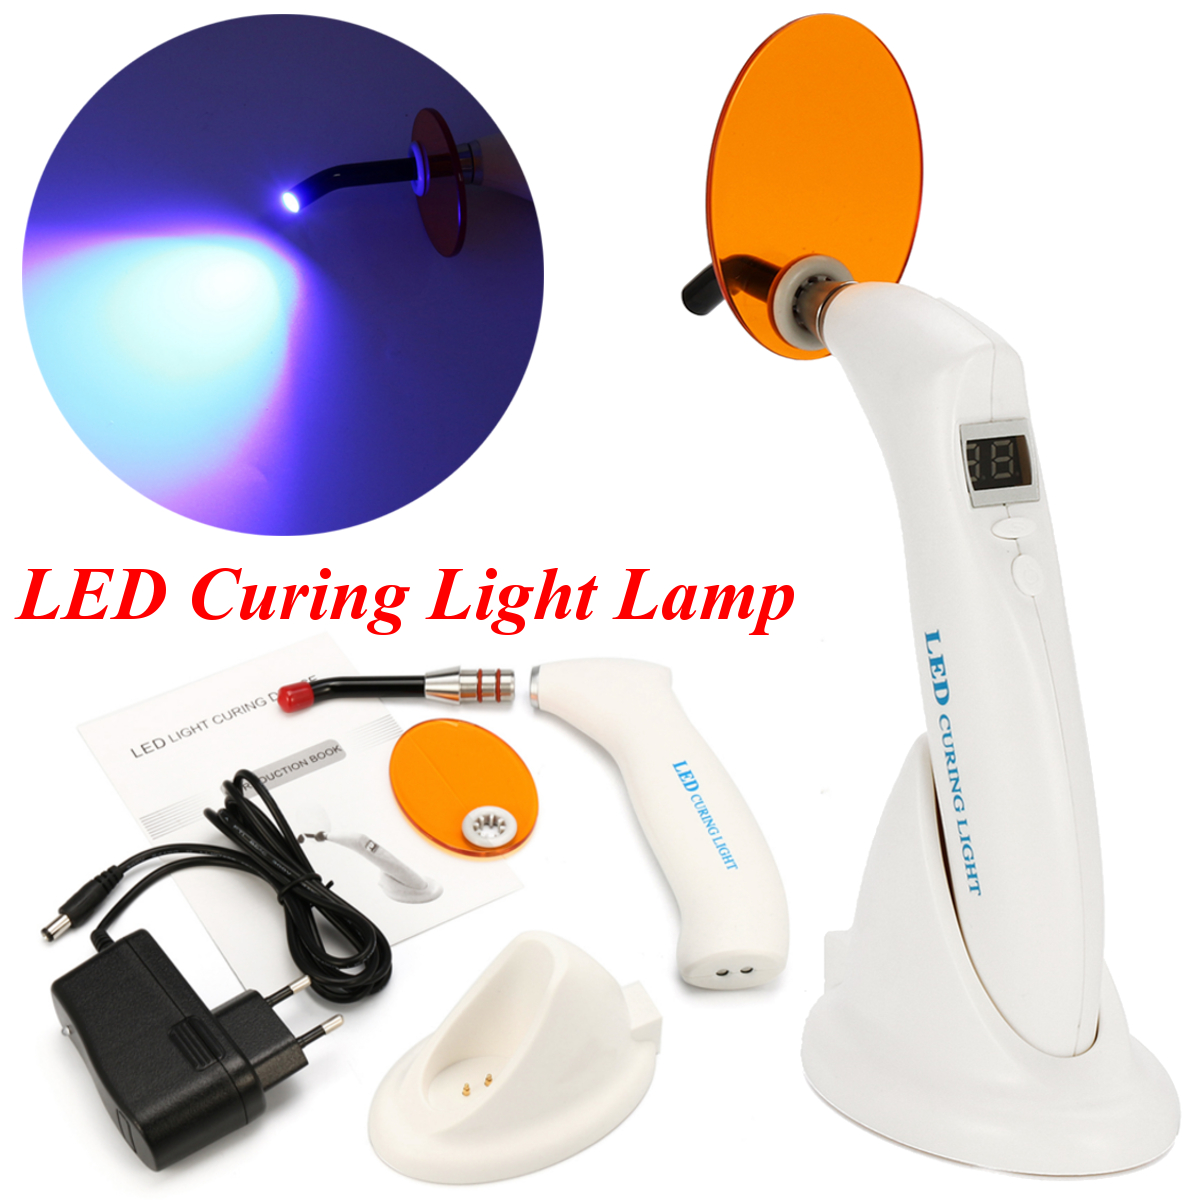 LED Light Cure Lamp LED Curing Light Wireless Cure Lamp